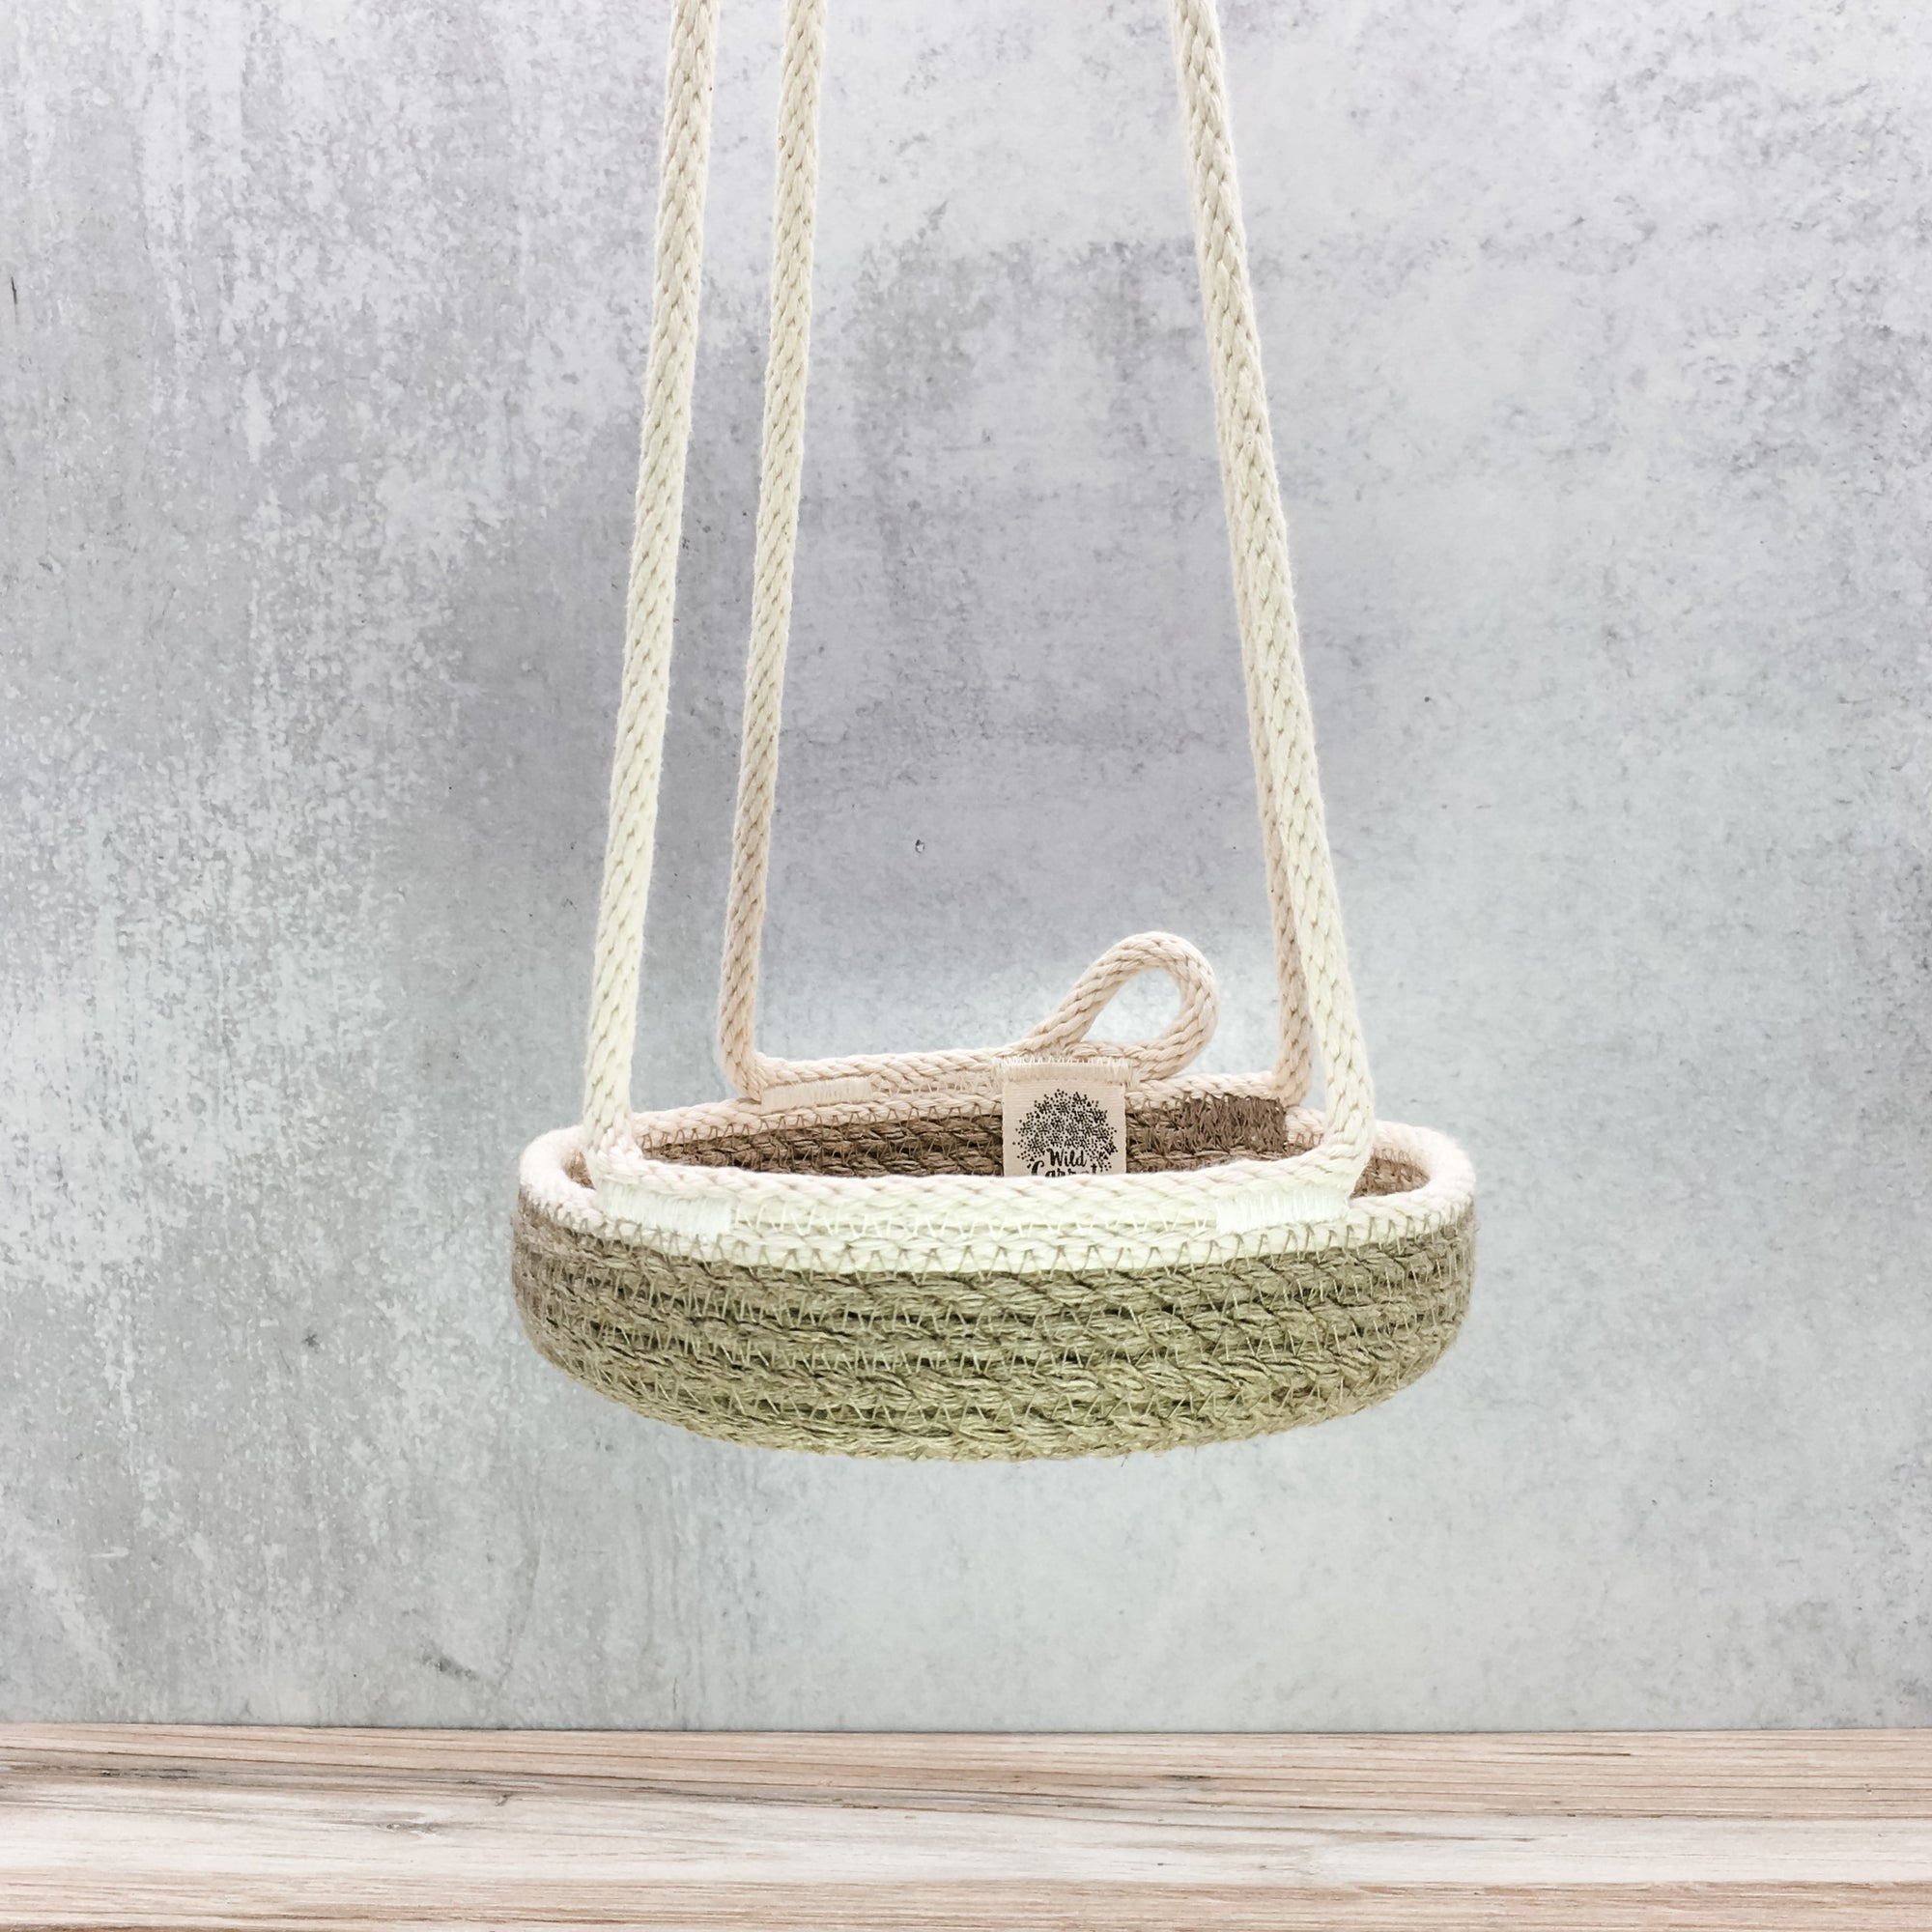 Hanging Tray Planter